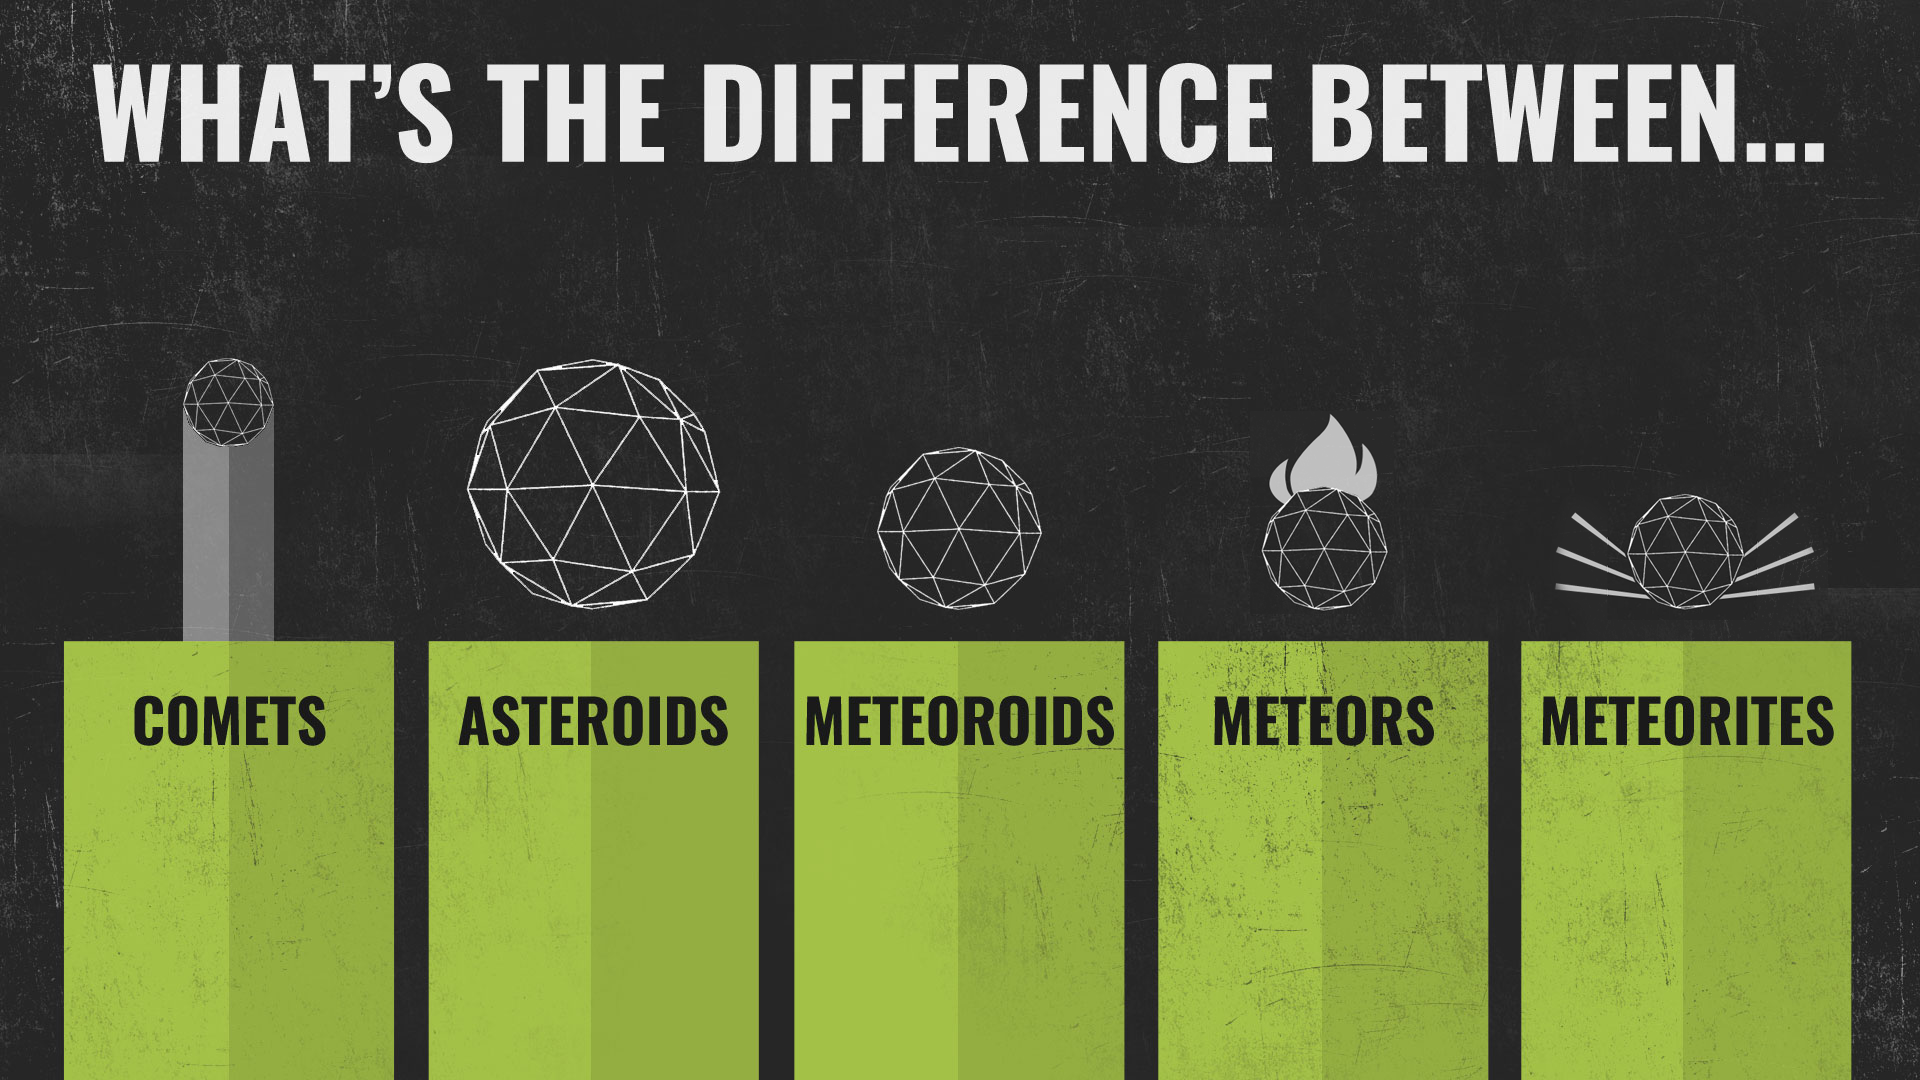 Comet clipart asteroid. What s the difference